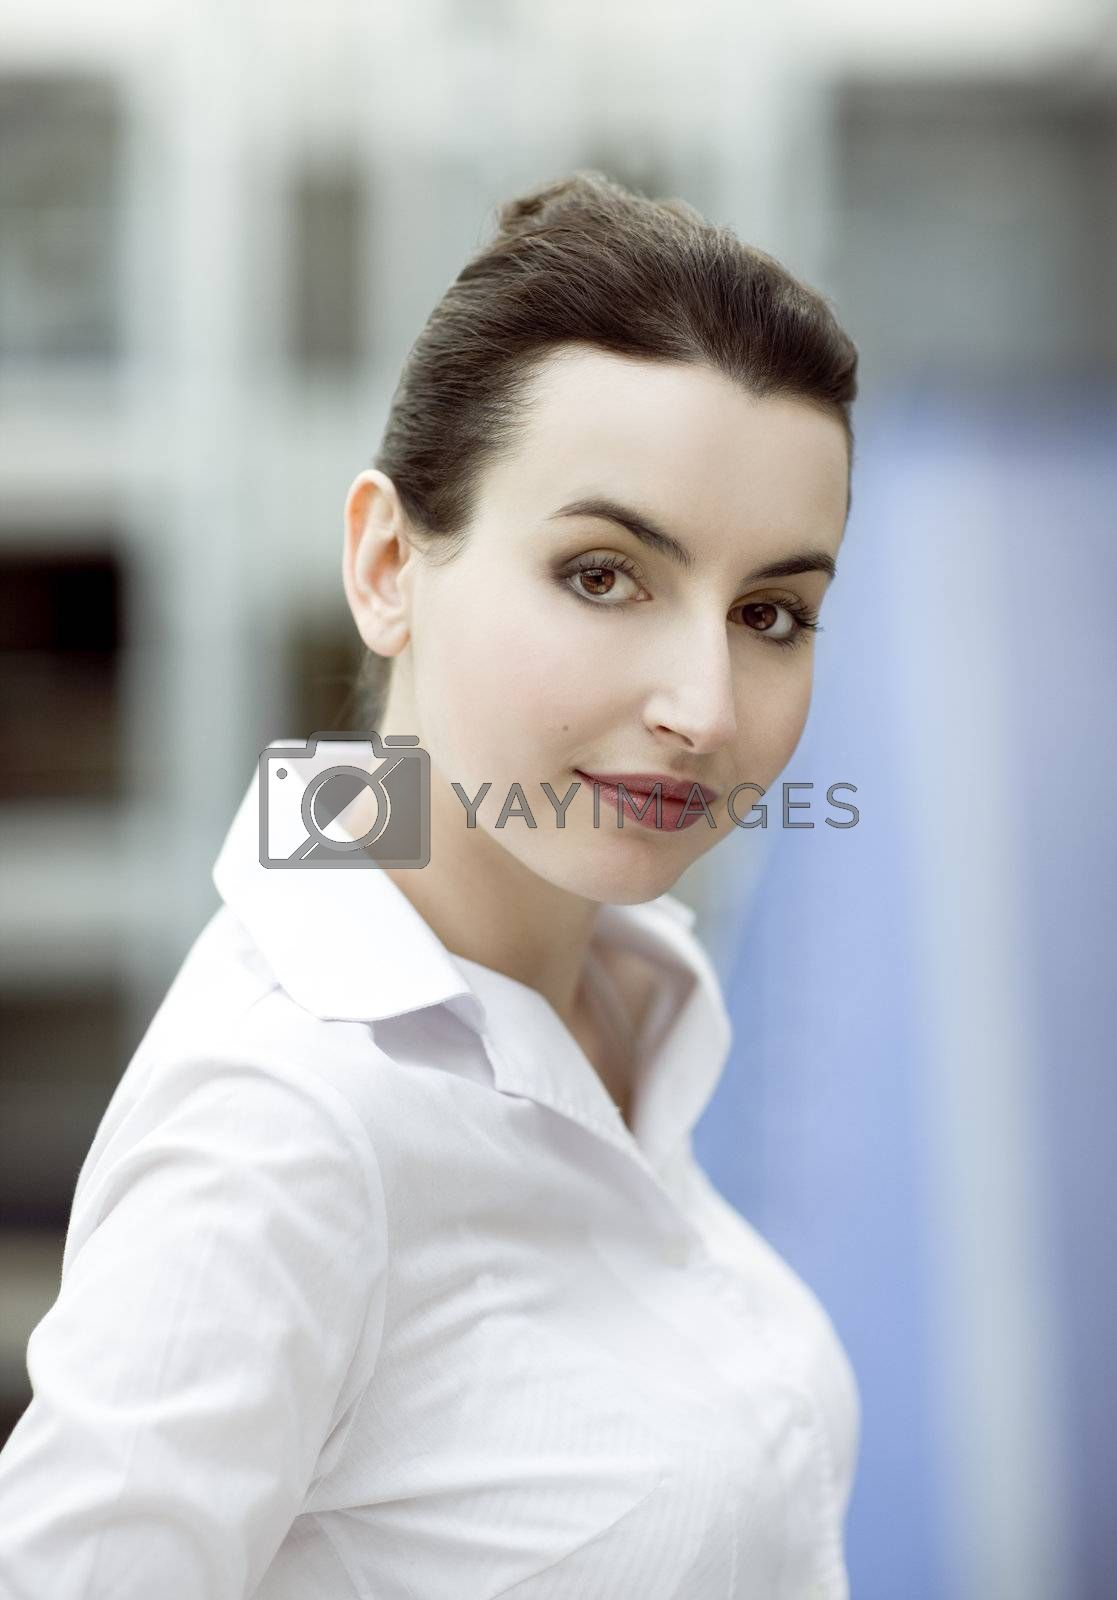 Portrait of young woman in modern office building environment